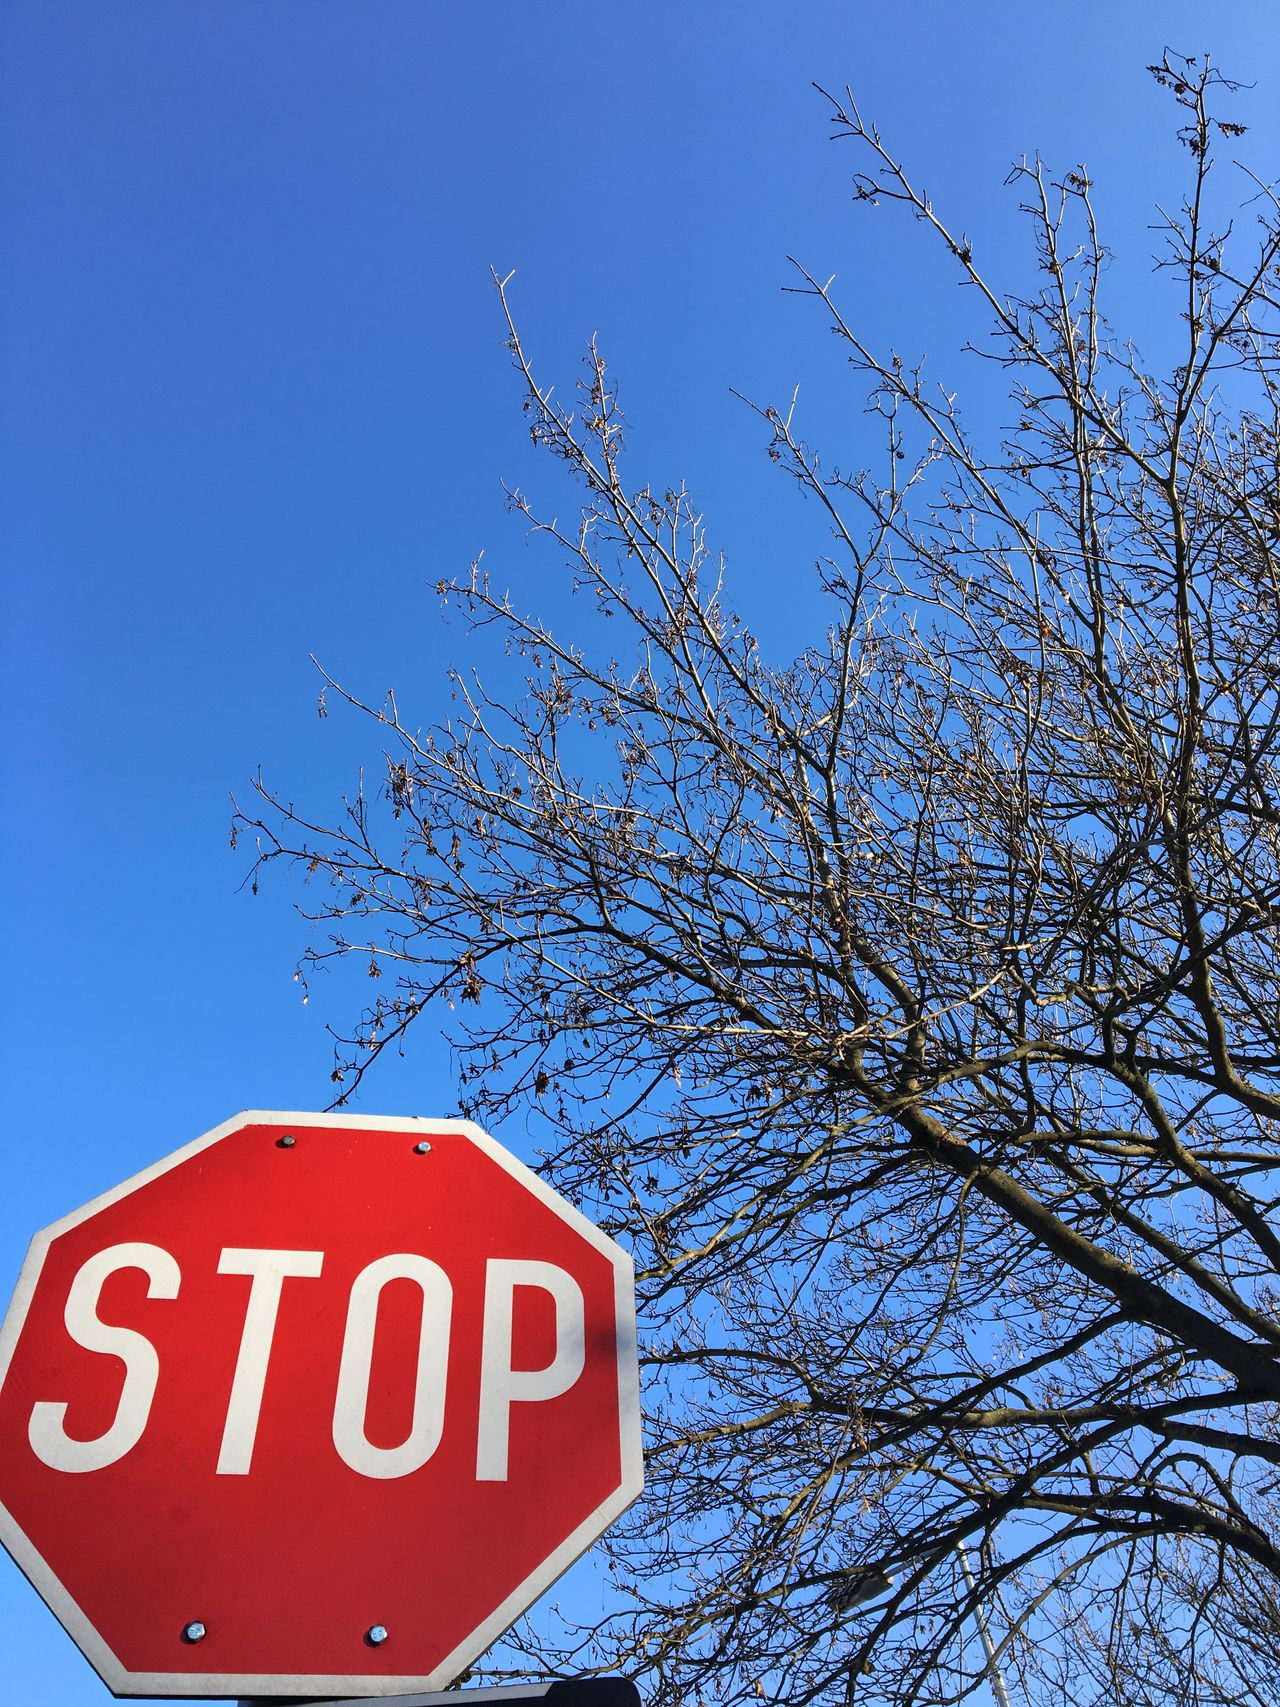 Stop?!?!? Red Blue Low Angle View No People Clear Sky Outdoors Text Stop Bare Tree Outdoor Photography Withphone Natural Beauty Beautiful Clouds Clouds And Sky Colors NoEffects  Noeffect Beauty In Nature Hungary Nature Day Tree Road Sign Sky